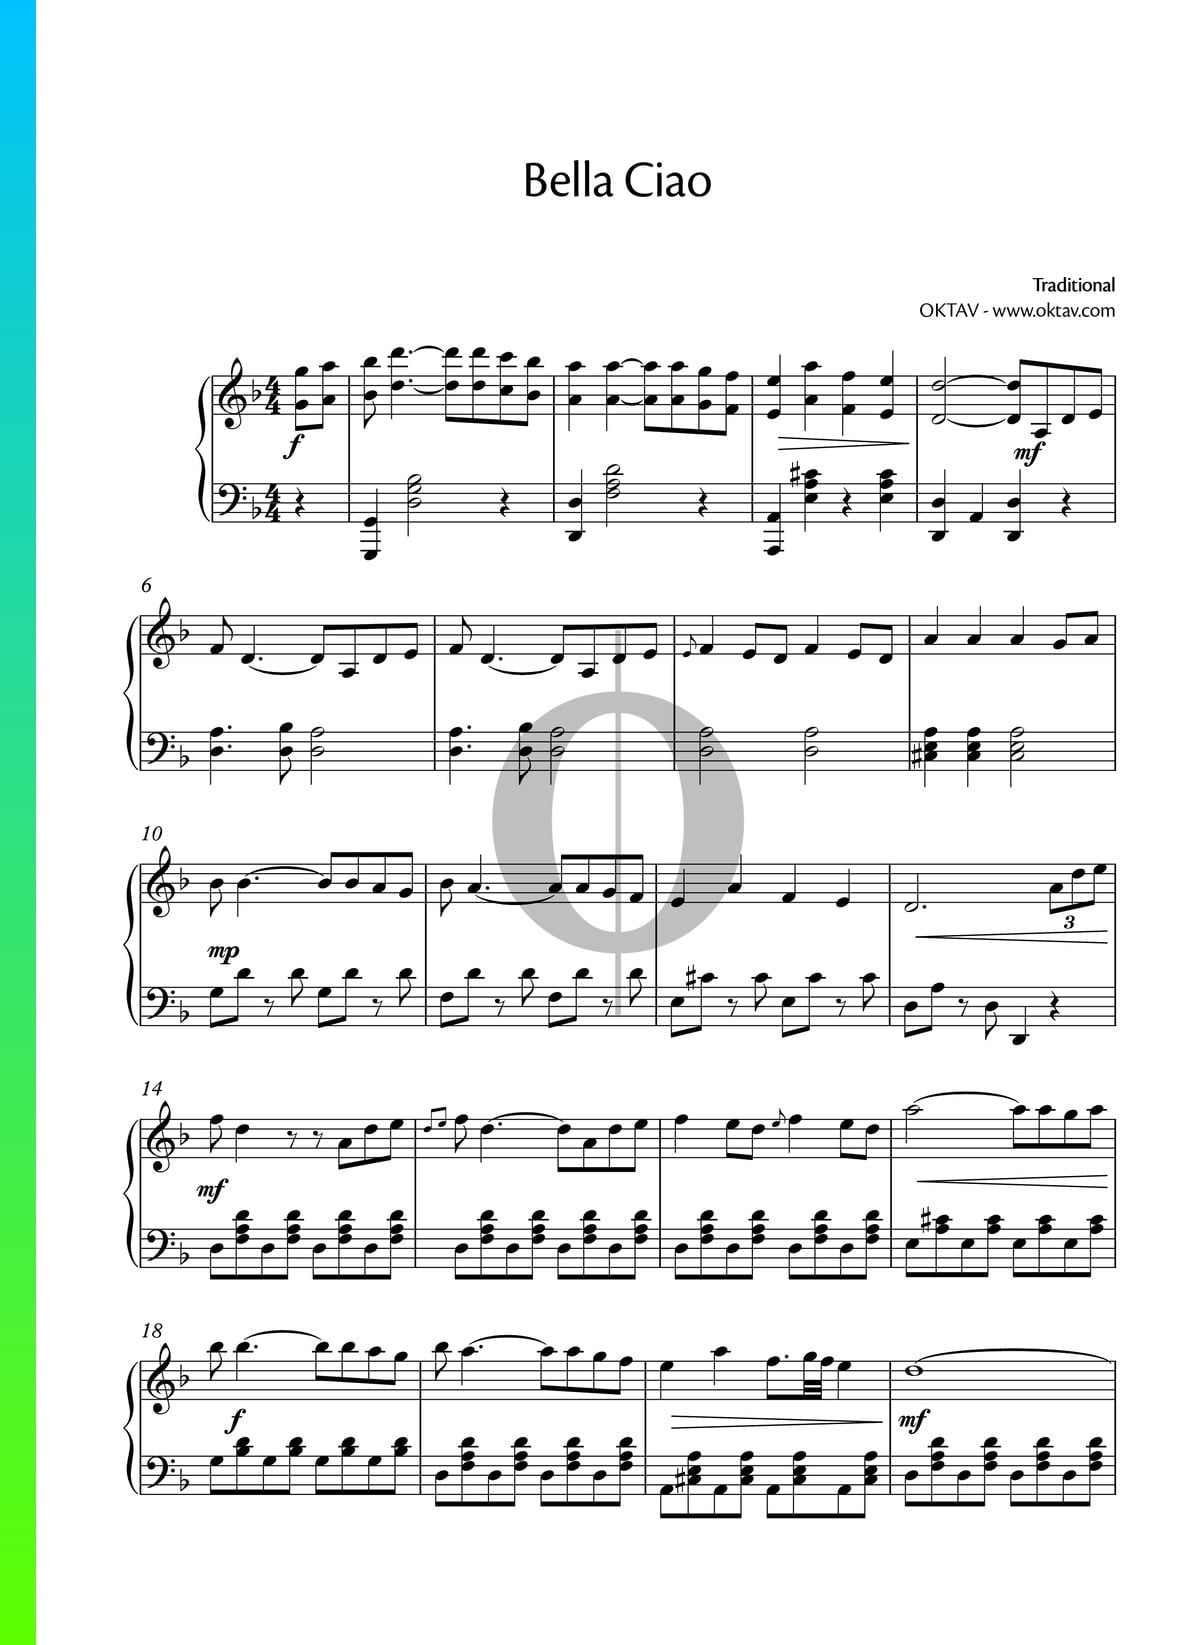 Bella Ciao Sheet Music Piano Solo Pdf Download Streaming Oktav